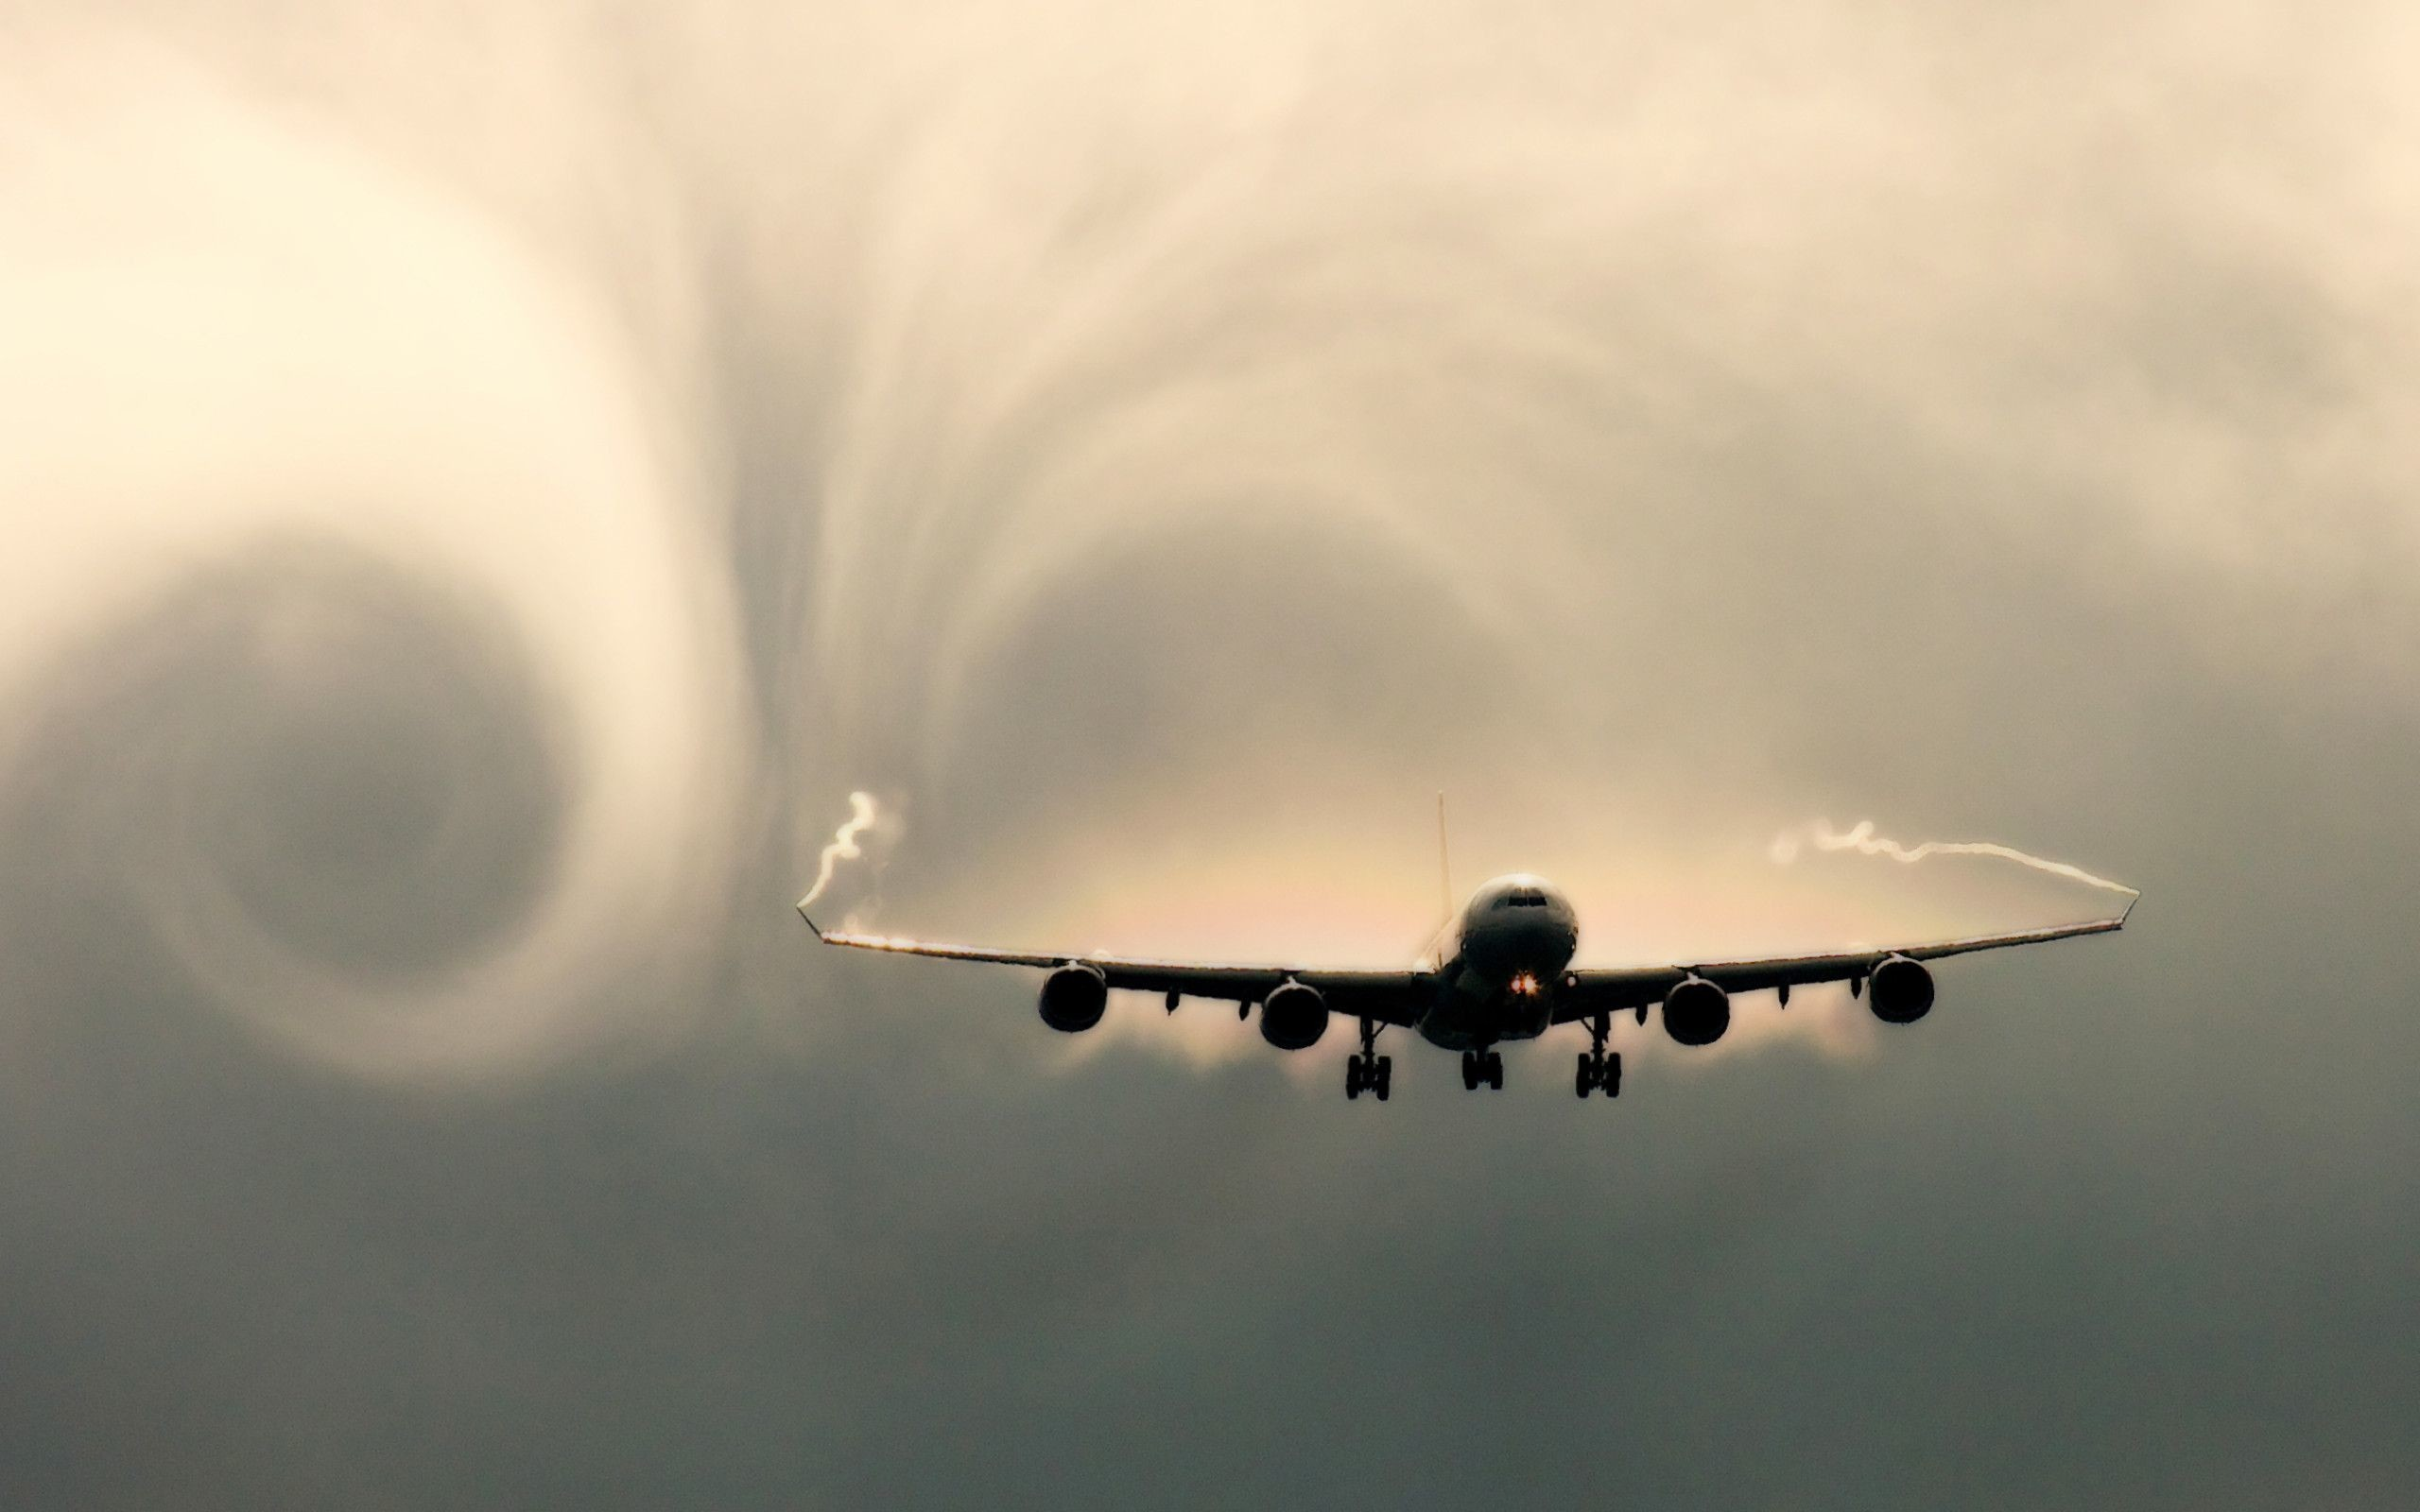 Wallpapers Of Aeroplanes 68 Images